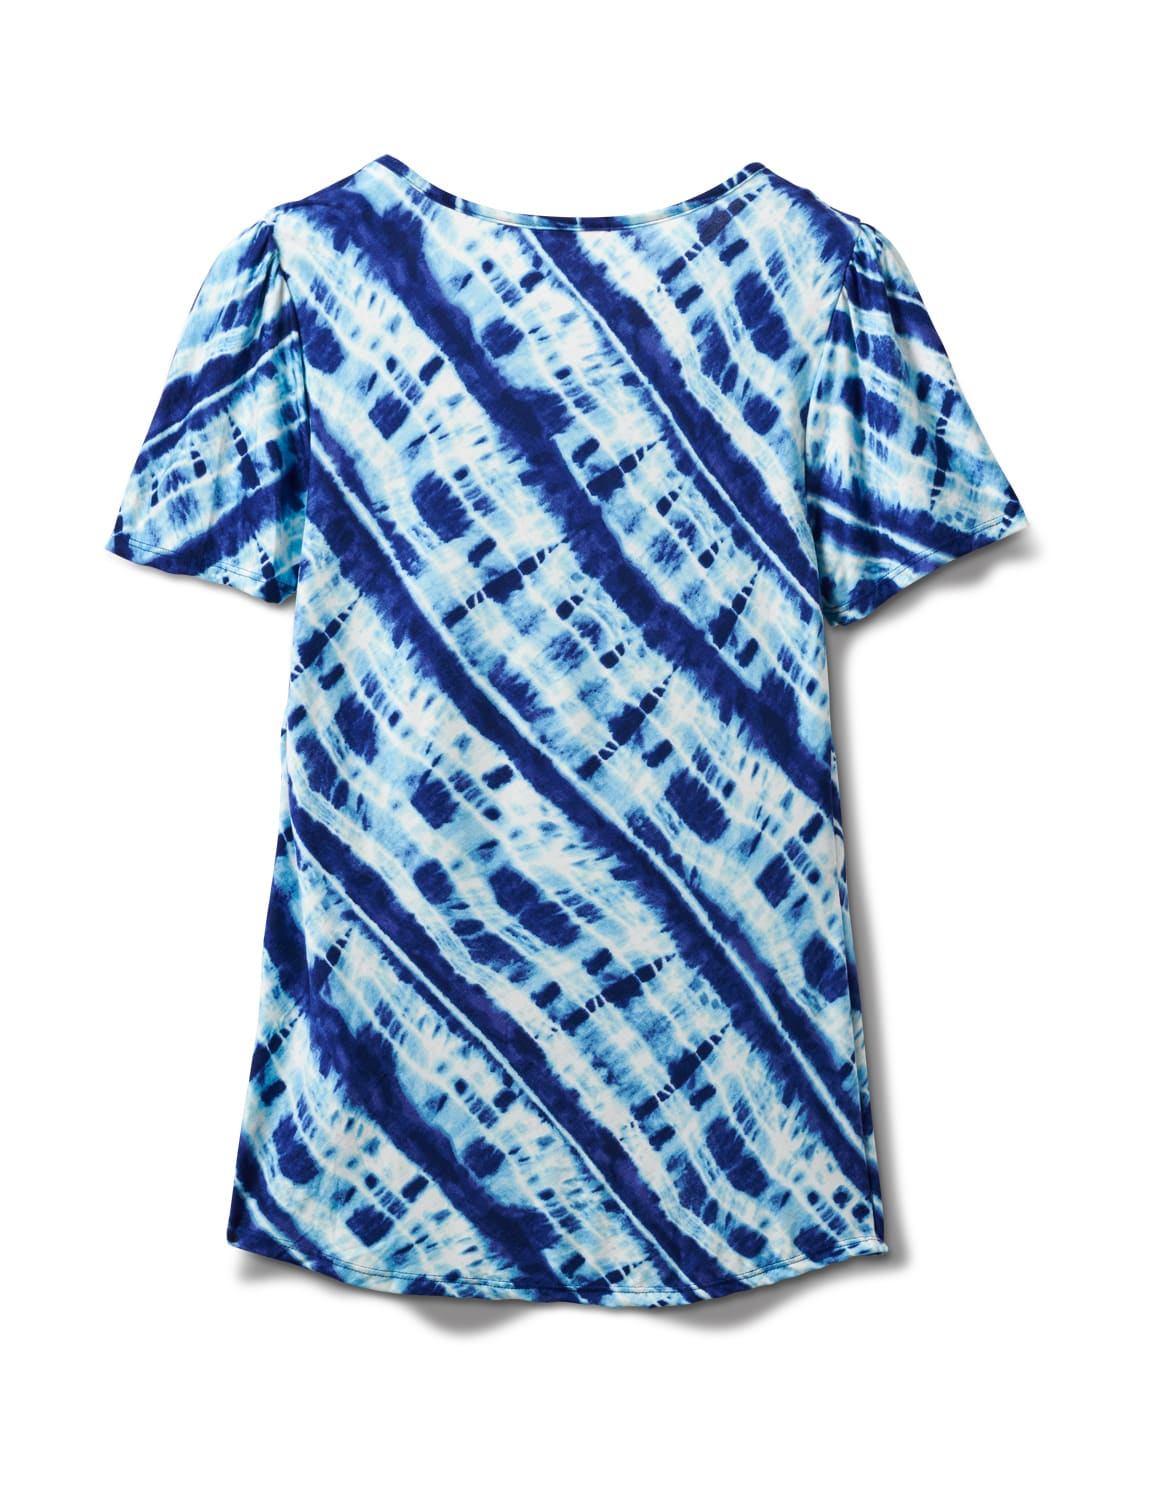 Bias Tie Dye Knot Front Knit Top - Misses - Blue - Back